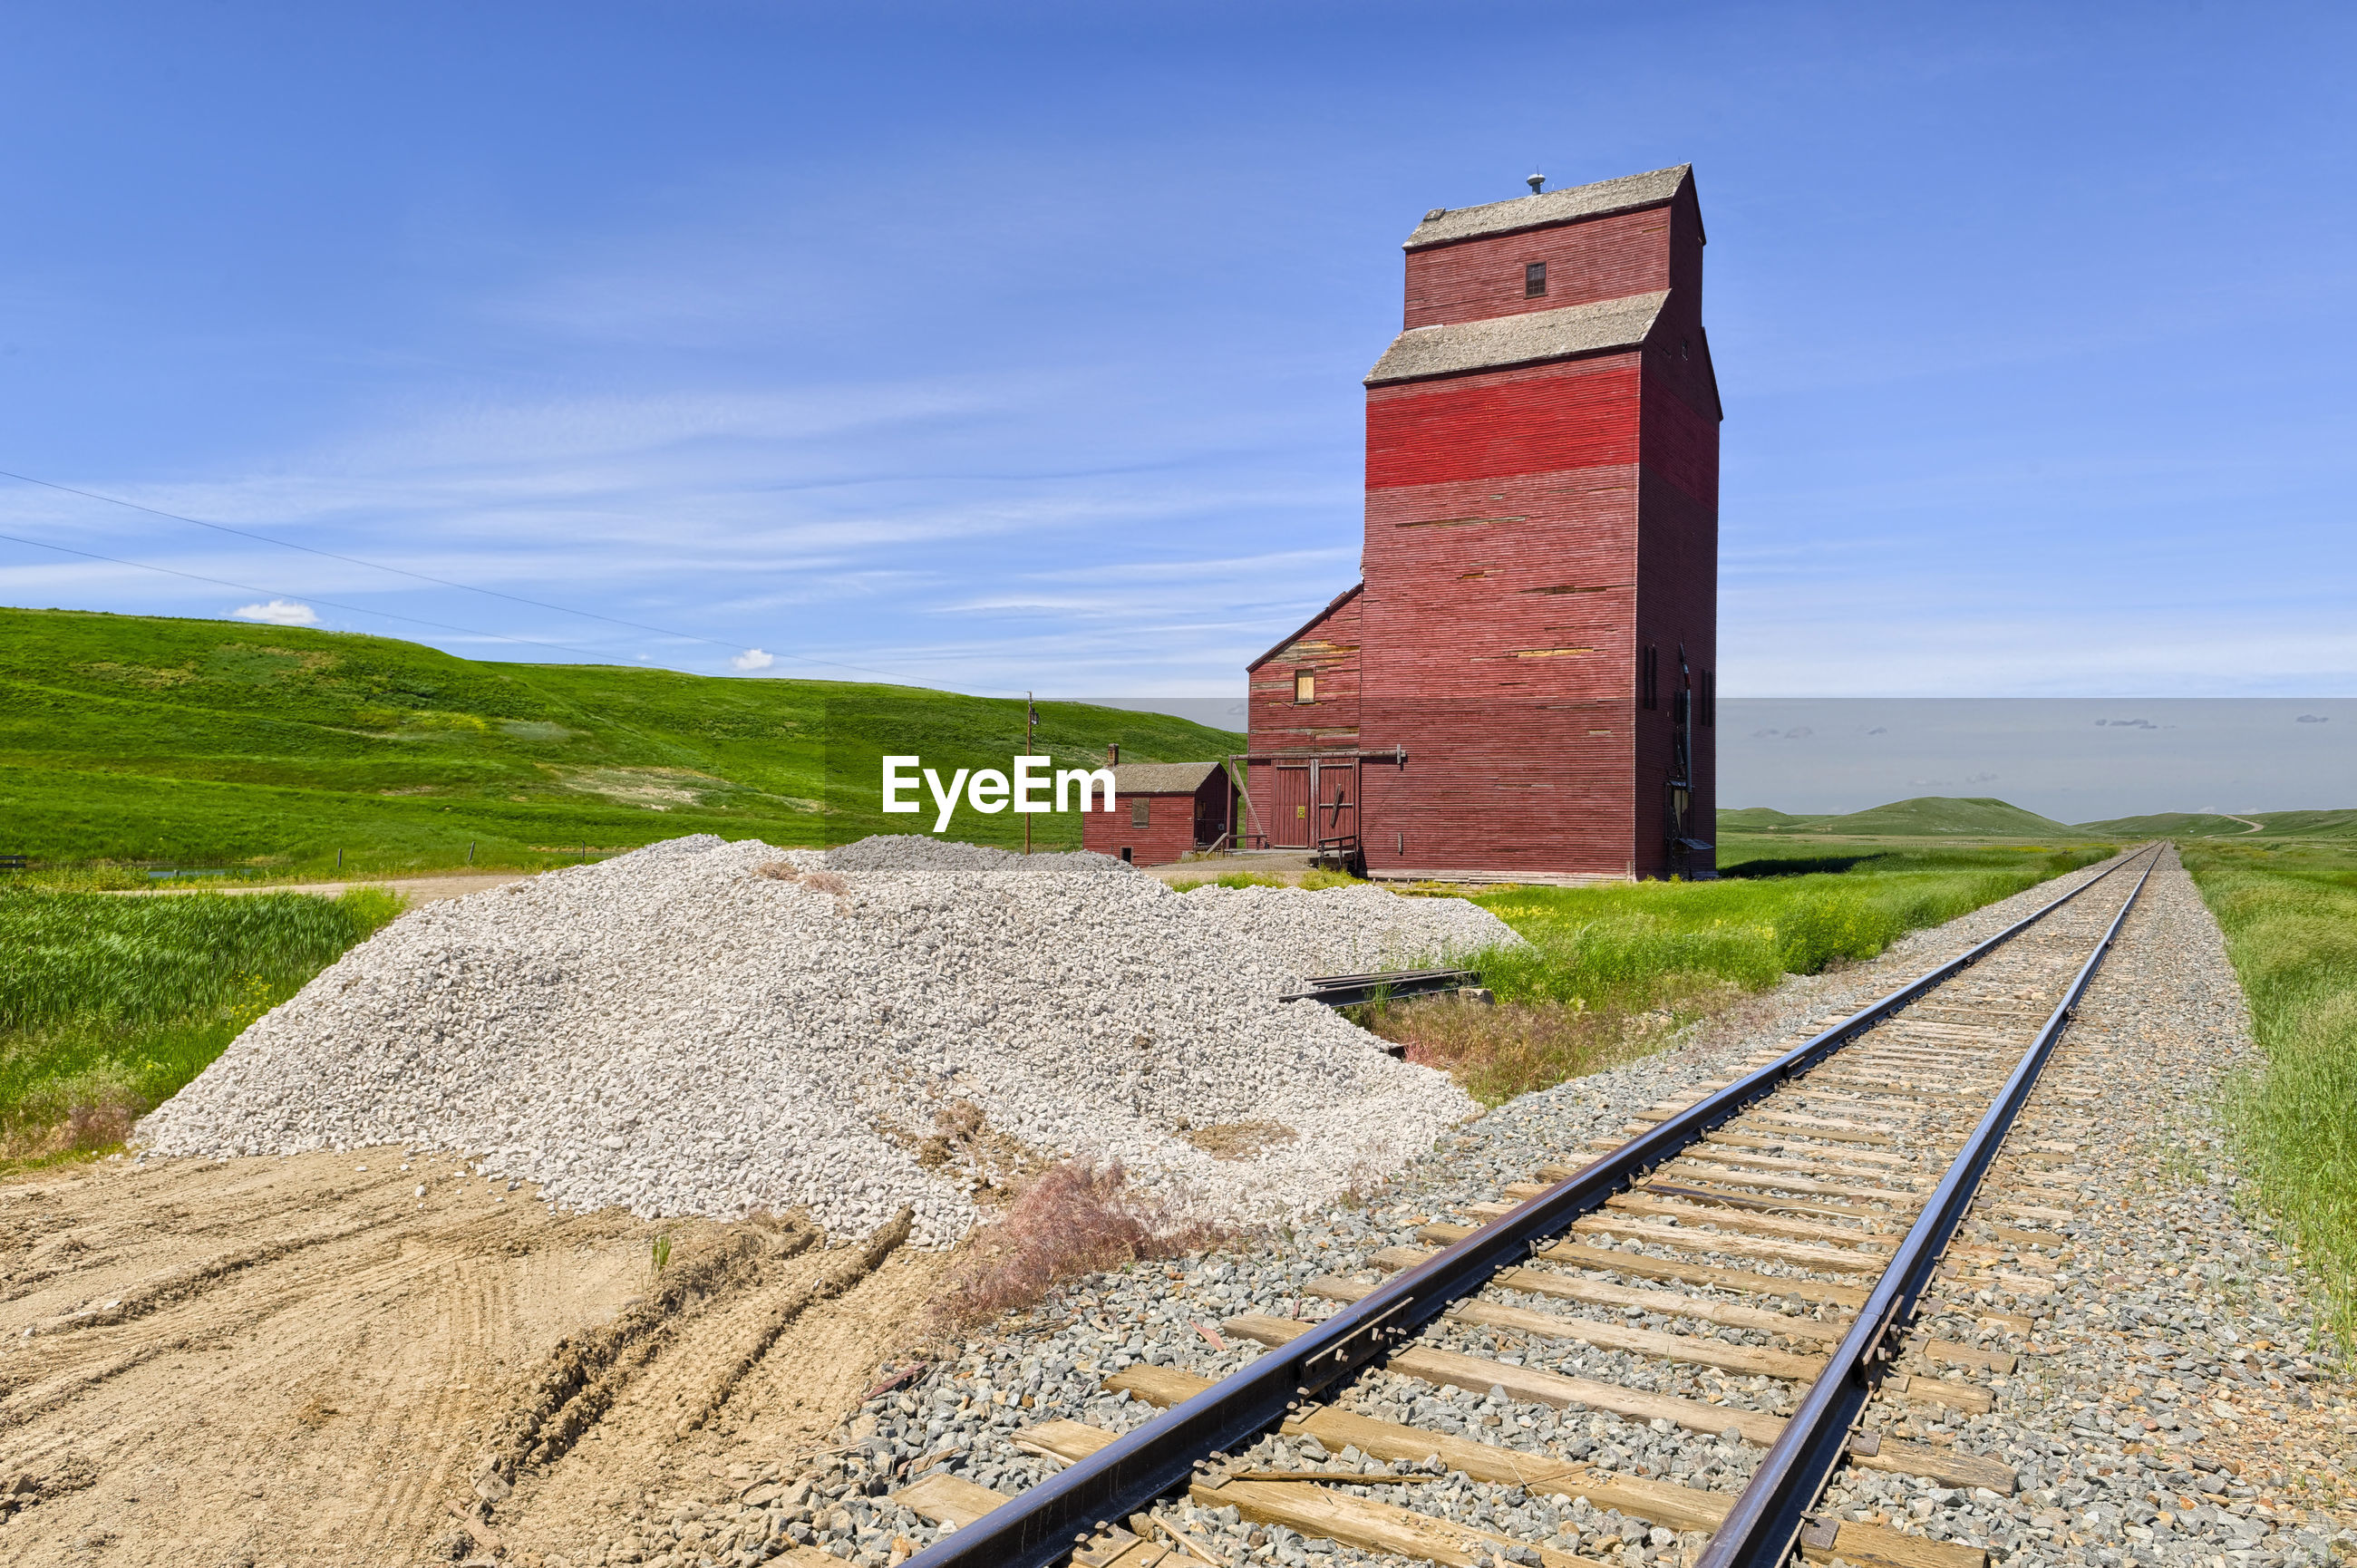 Railroad tracks by house on field against sky